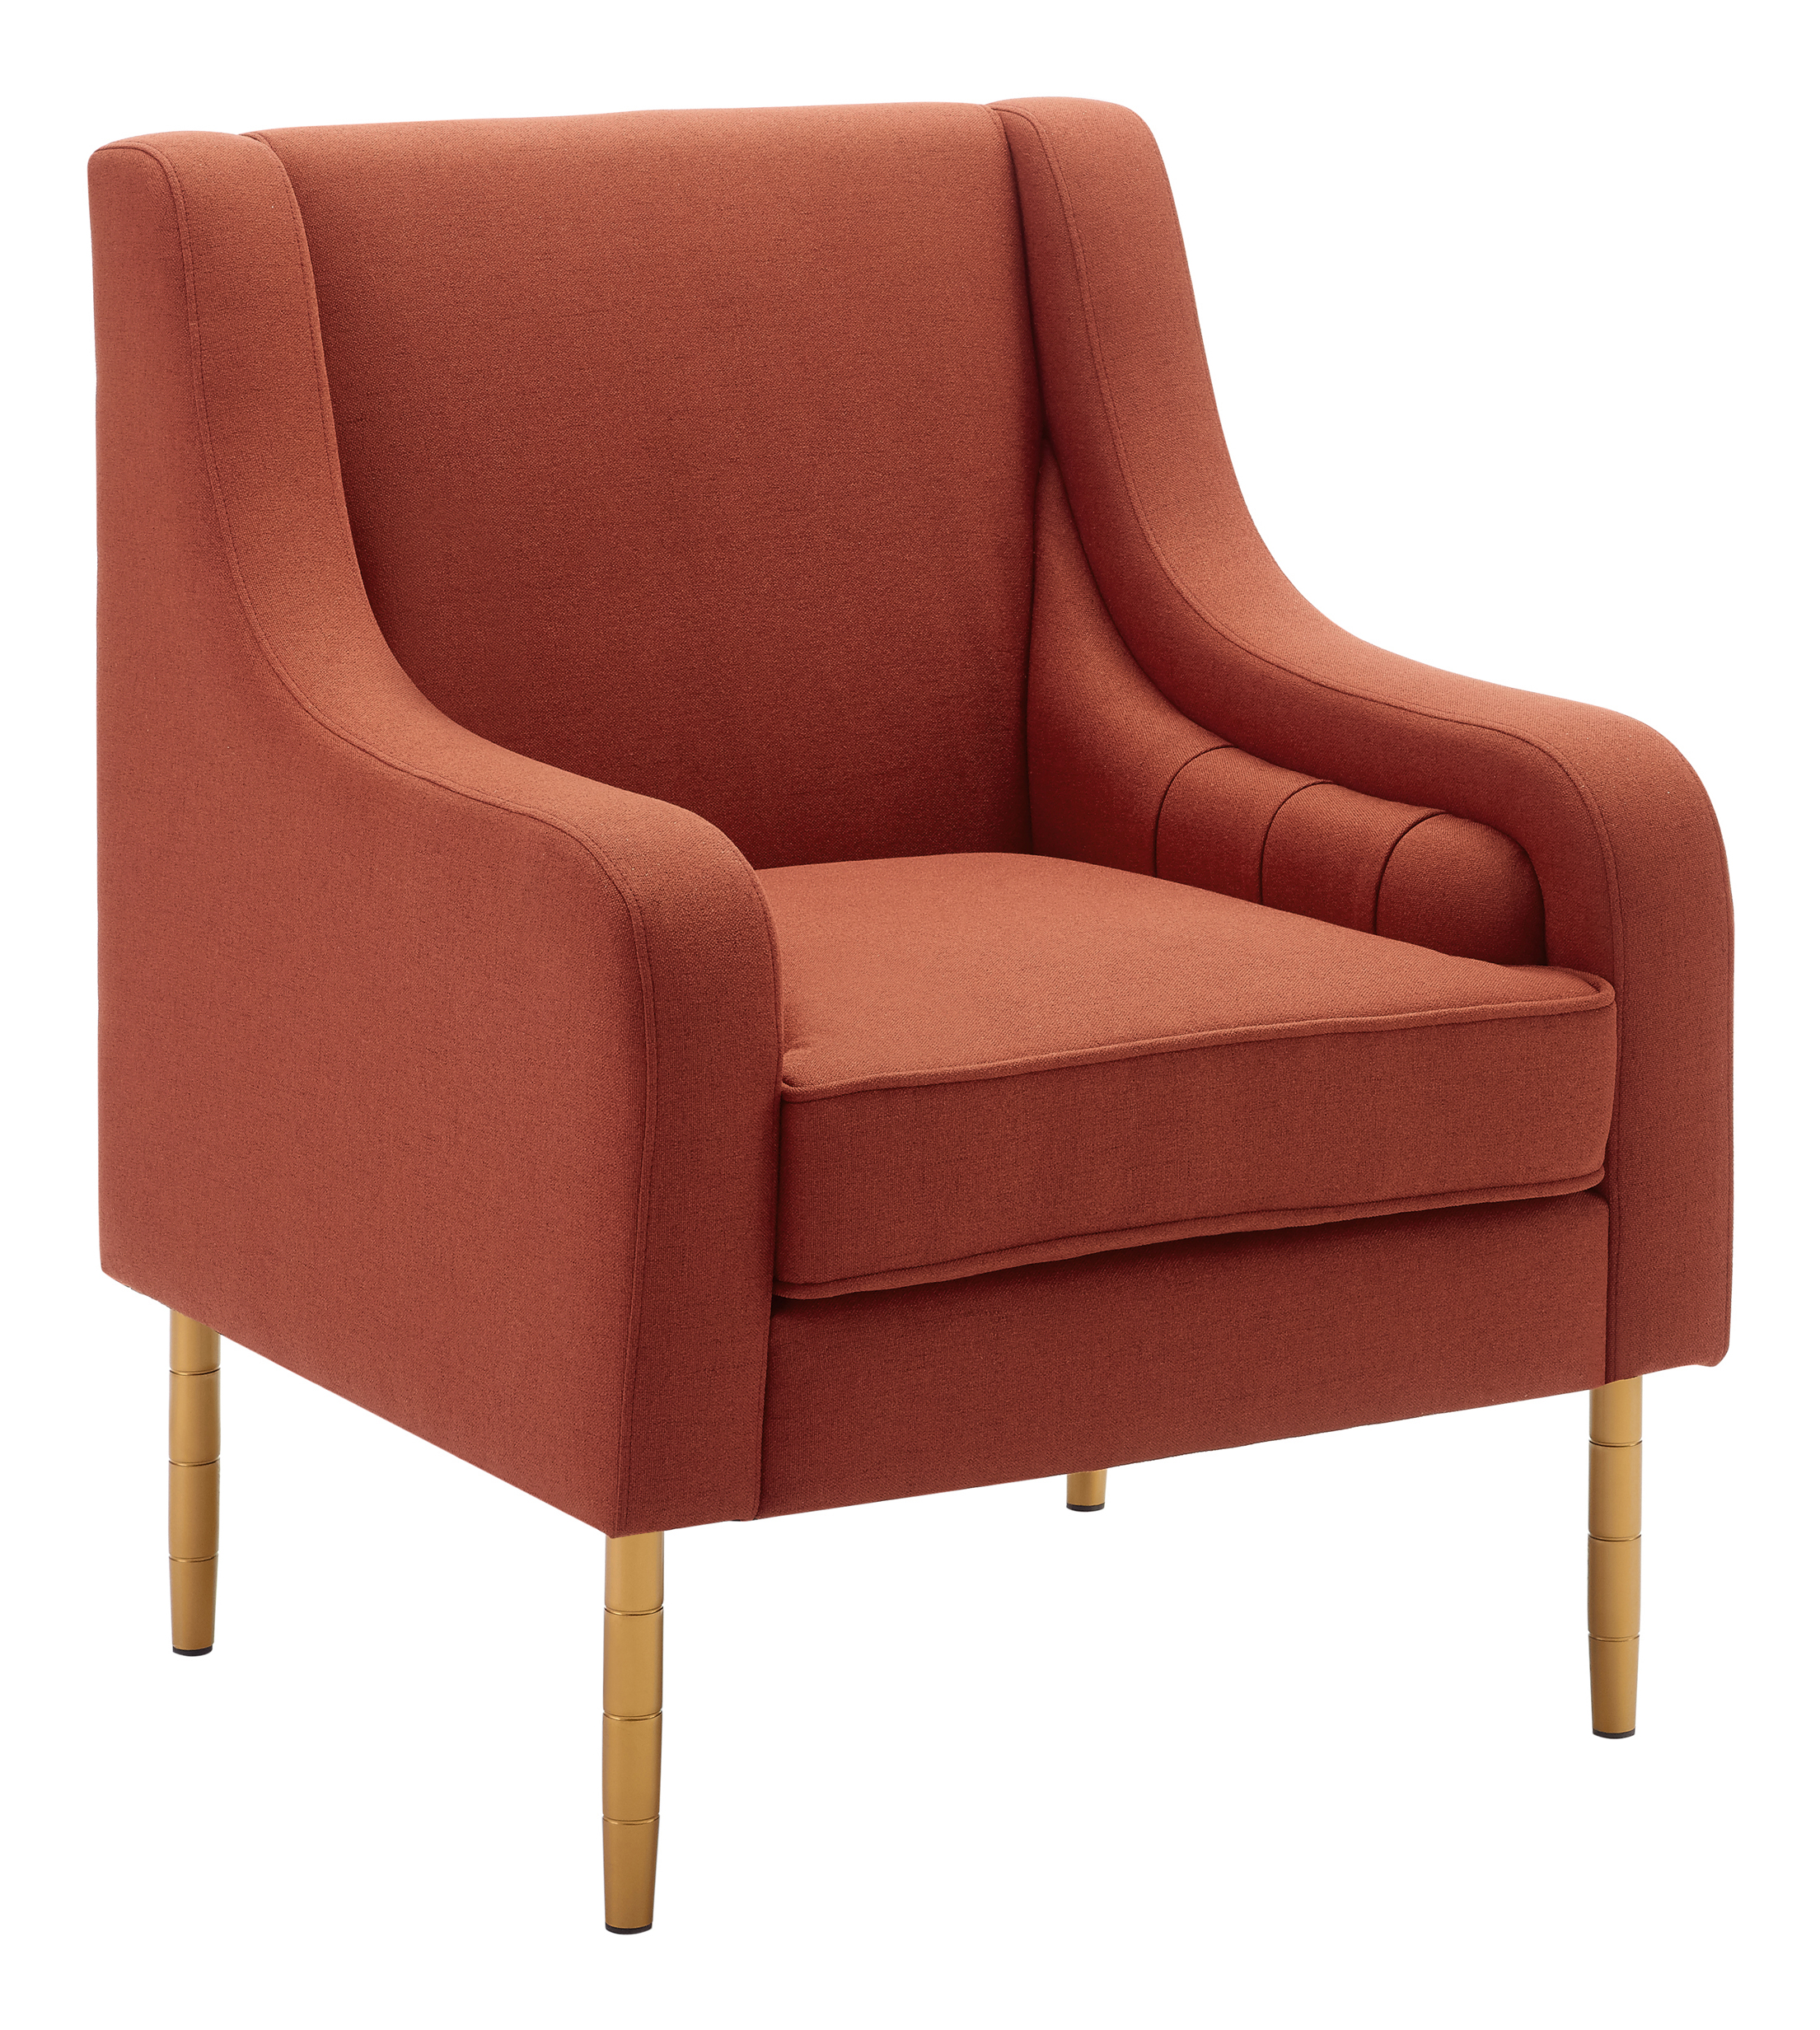 Linon Oxford Accent Chair, Paprika/Gold